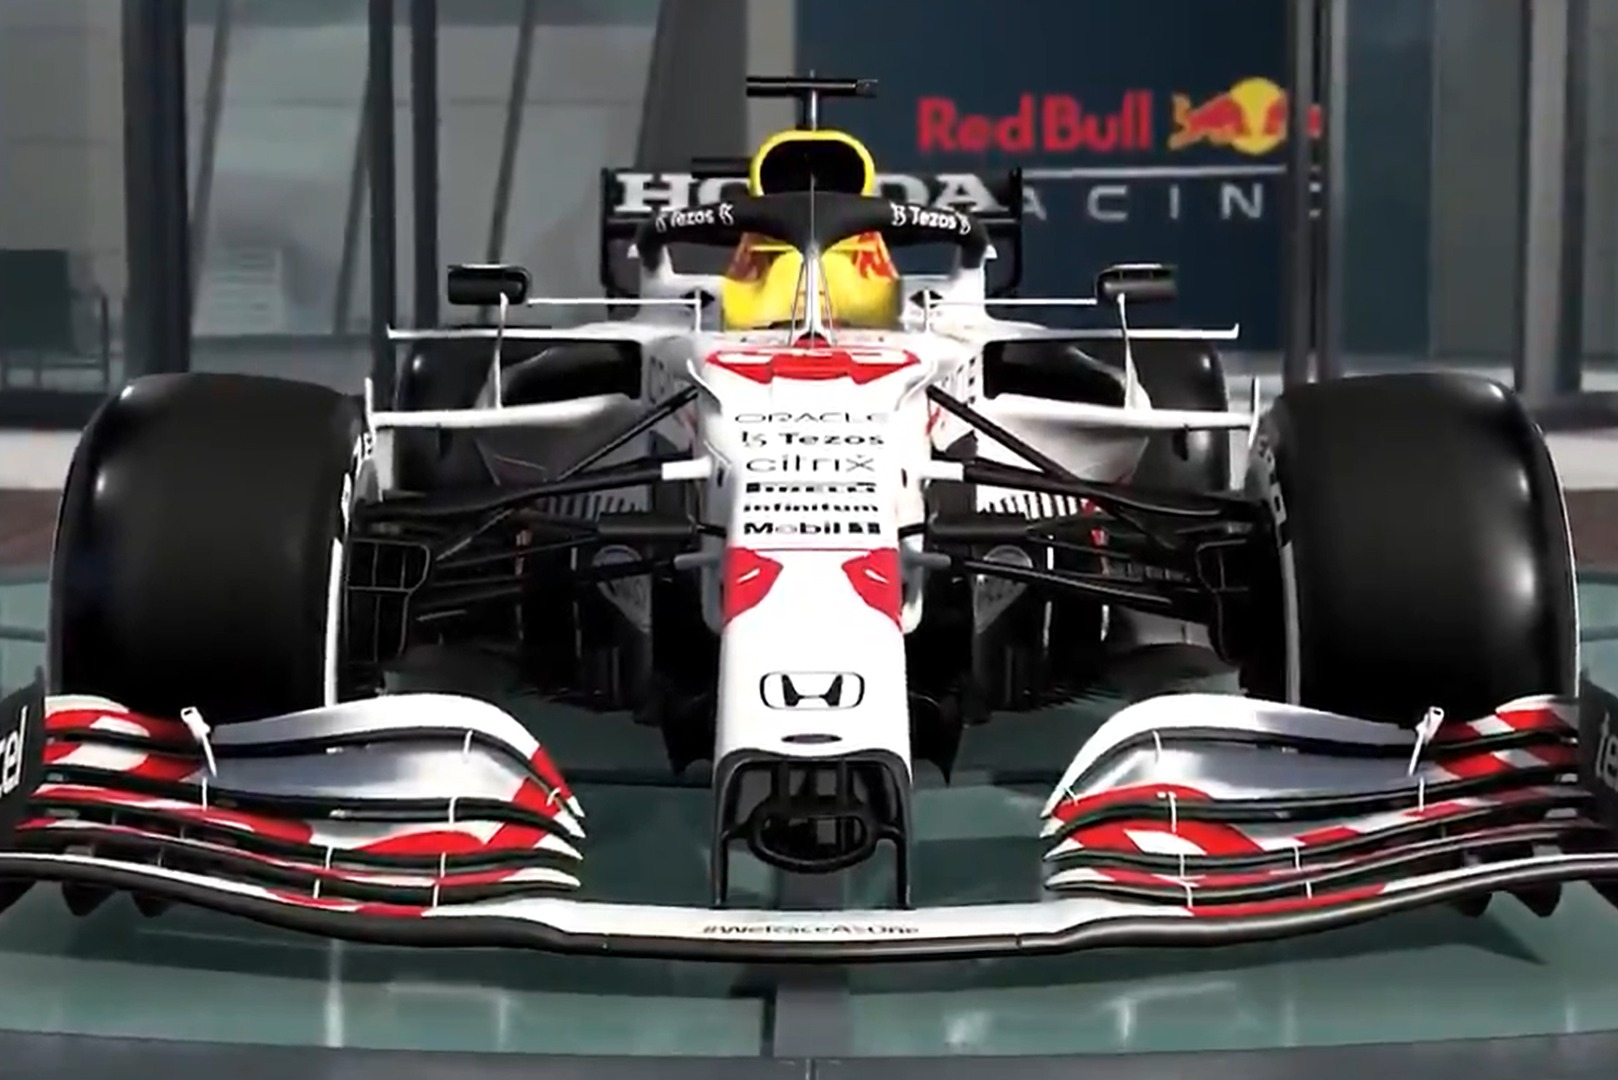 Pink Bull's Honda tribute livery is coming to the F1 2021 recreation - Motor Informed